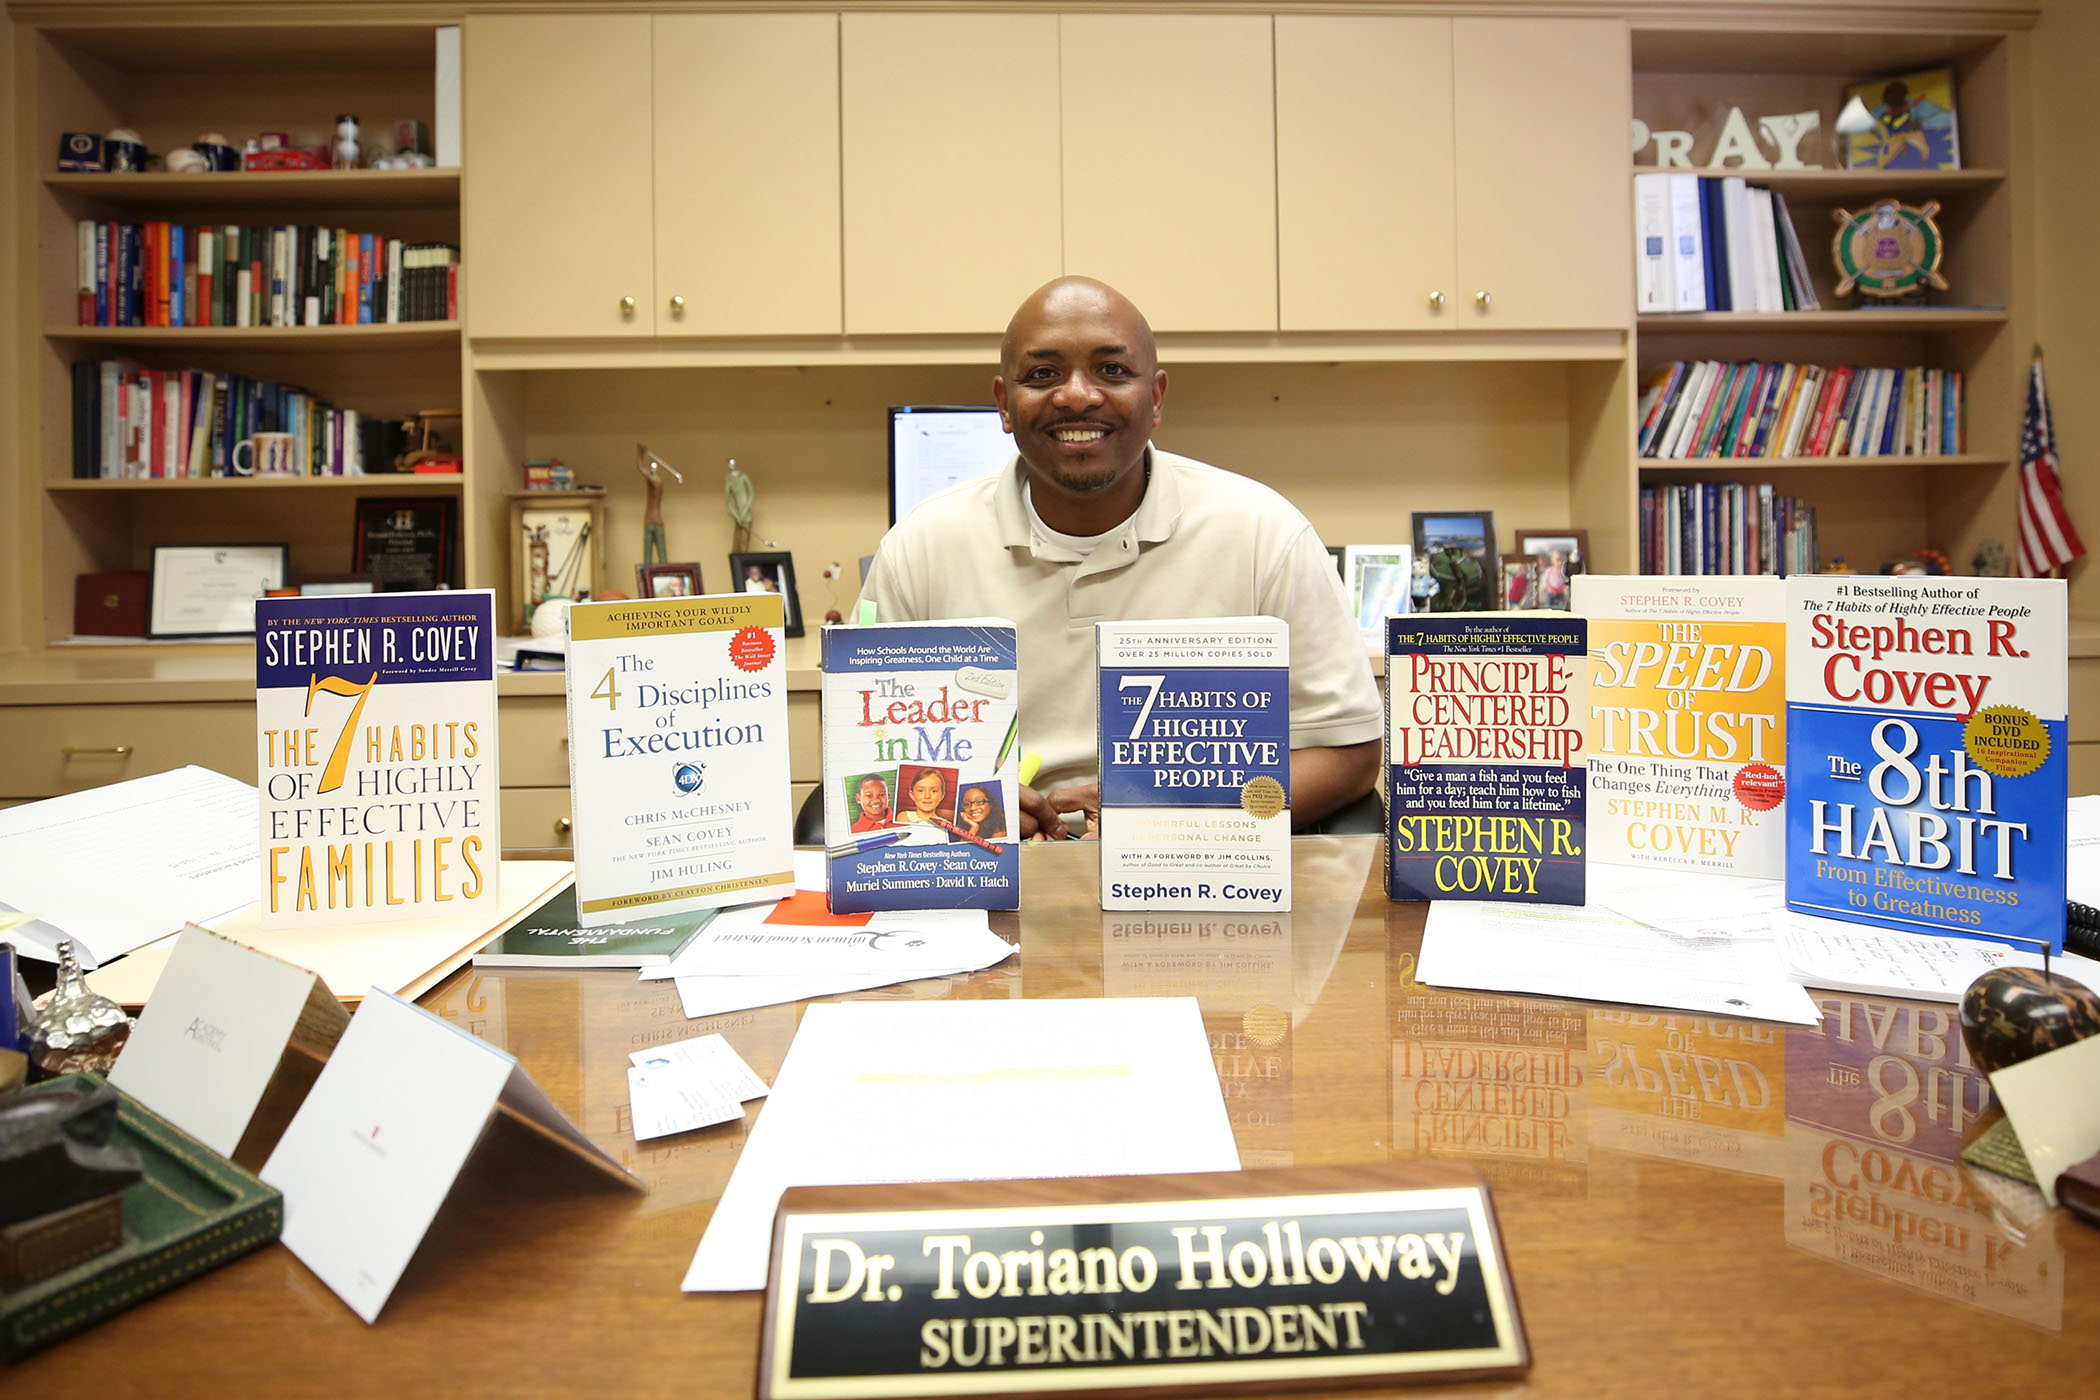 Dr. Holloway sits at his desk with books by Stephen R. Covey.